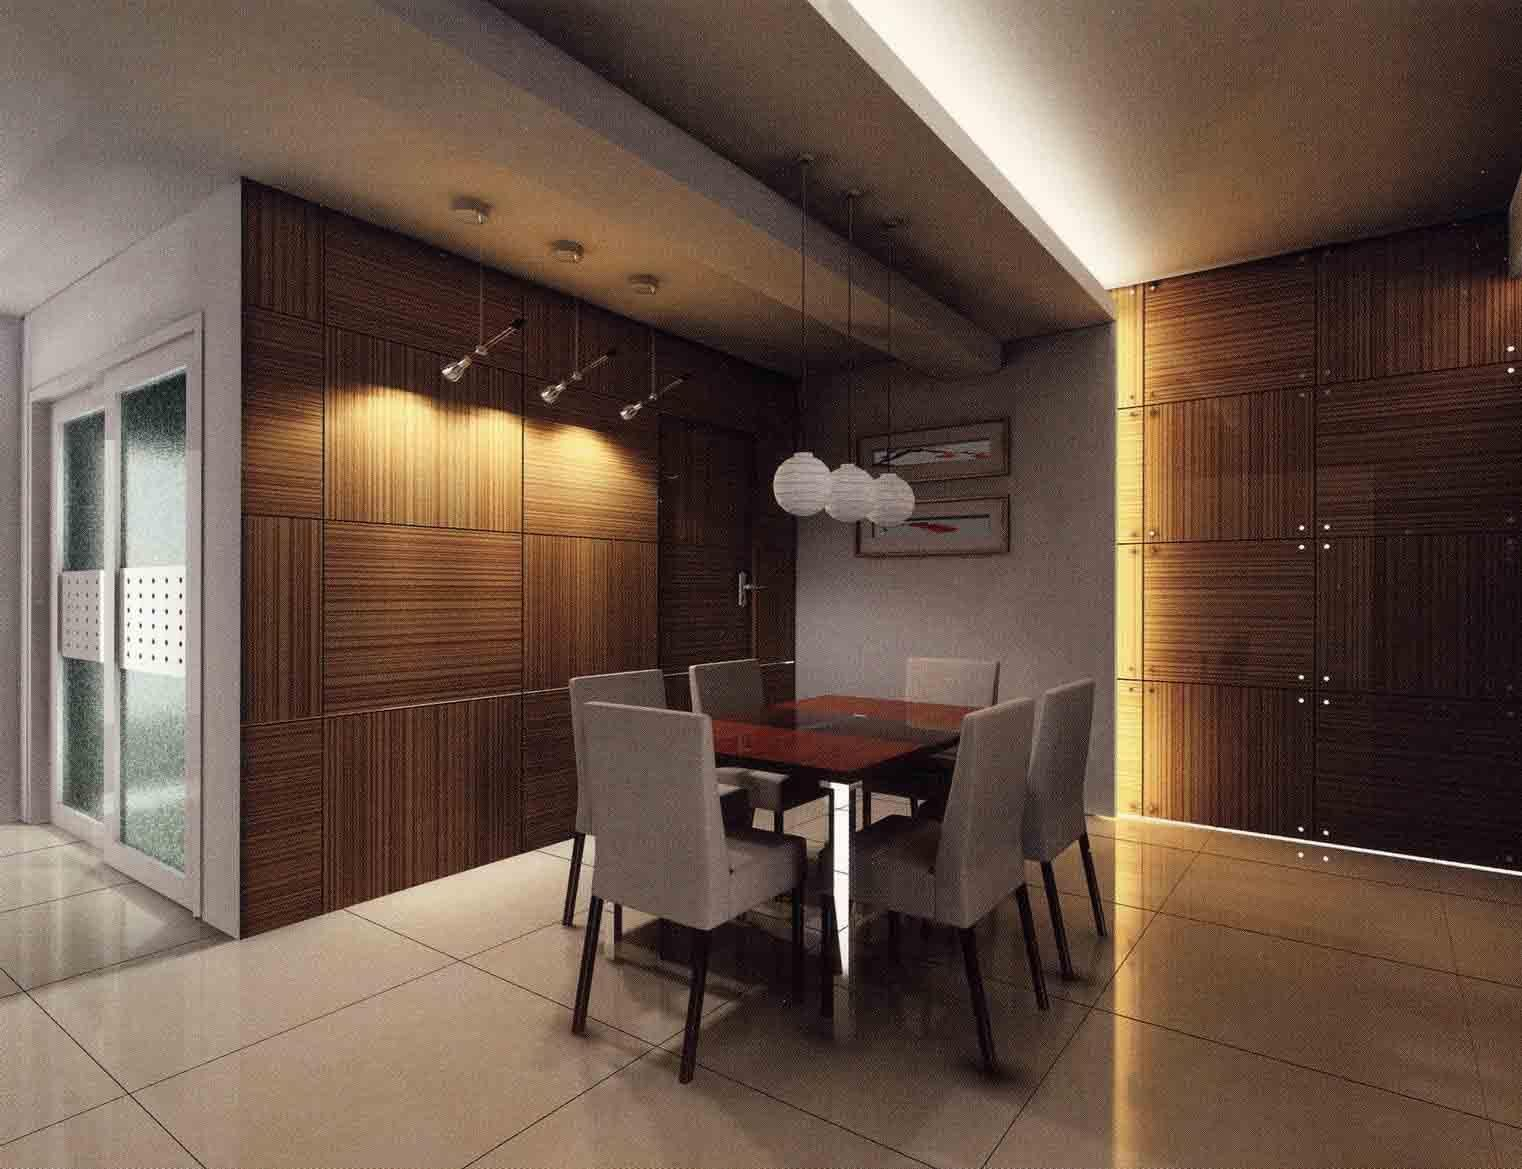 Kitchen Ceiling Ideas Kitchen Ceiling Ideas Vaulted And 3d Drop Ceiling In 2020 Ceiling Design Modern Ceiling Design Kitchen Ceiling Design